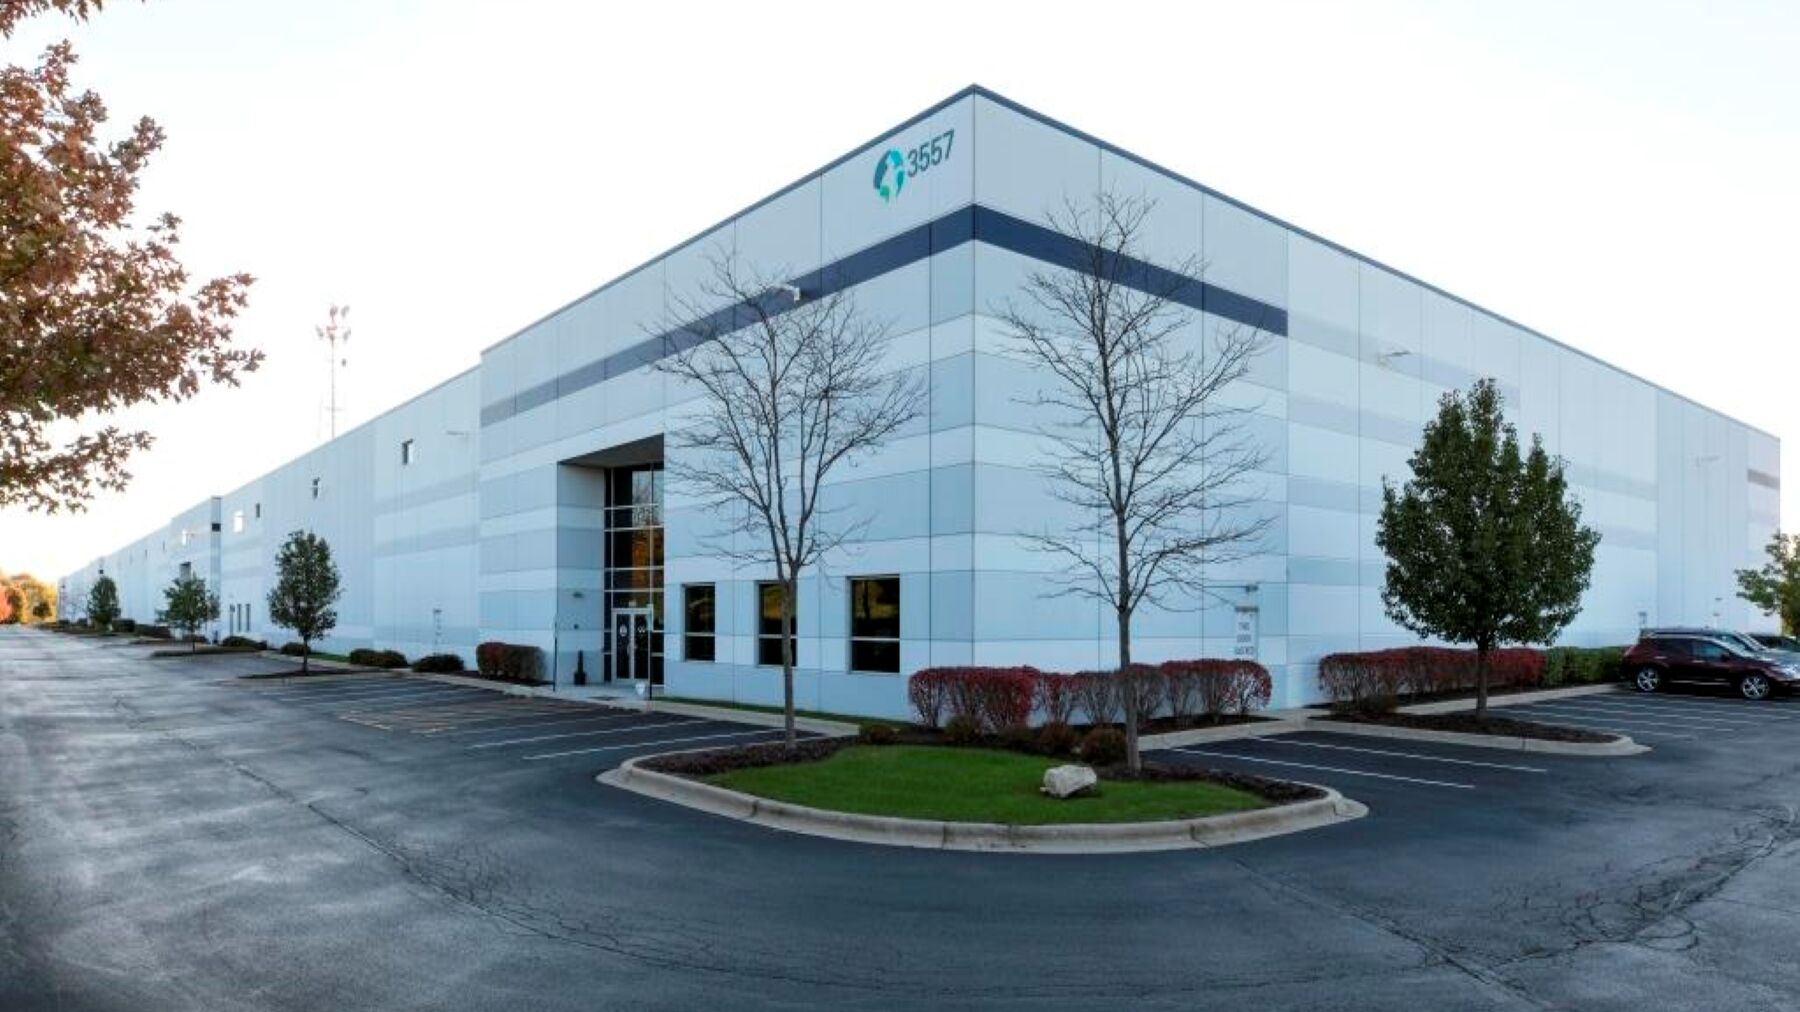 DPM-Prologis-Aurora-3557-Butterfield-Suite-105_Bldg-Image.jpg